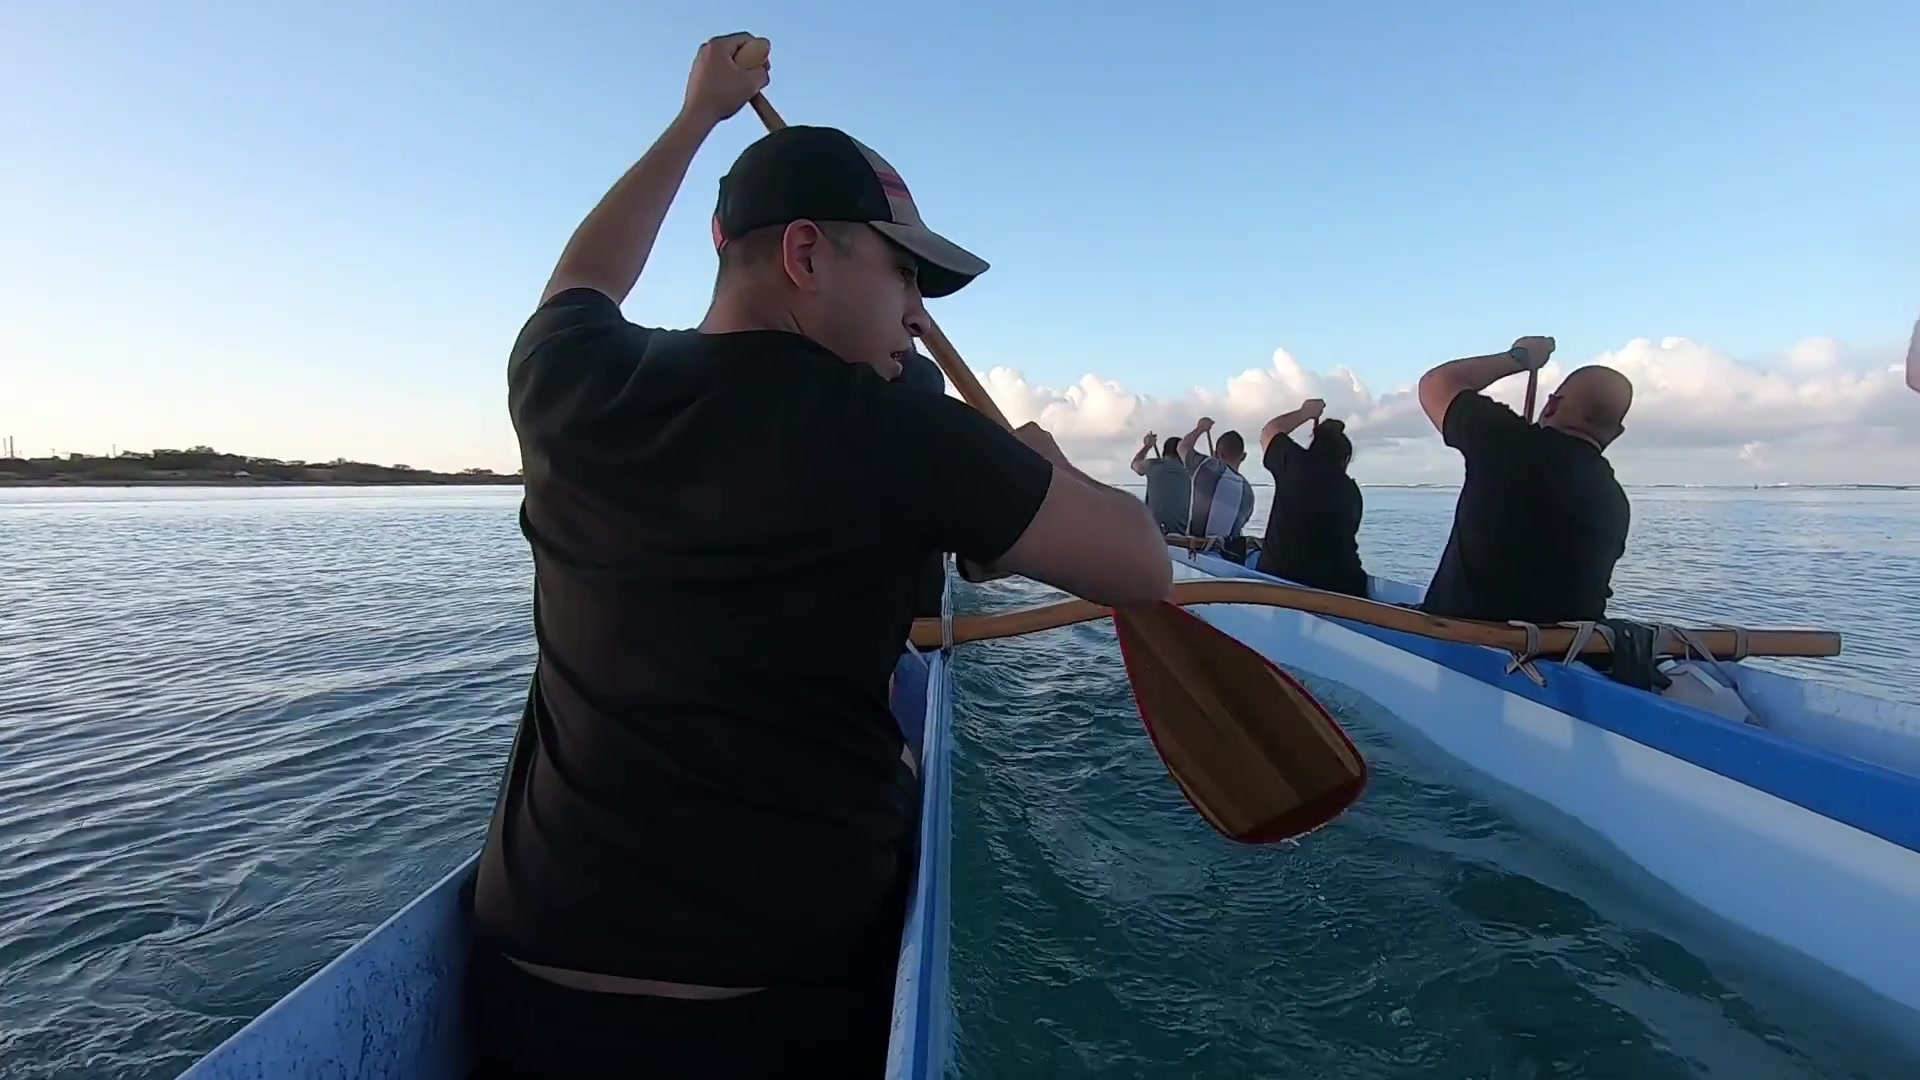 U.S. Army Reserve Soldiers from the 322nd Civil Affairs Brigade enjoy some early morning paddling with the Pacific Pride Paddlers on August 19 2021, at the New Hope Canoe Club in Honolulu. Paddling is a useful way to help build teamwork and encourage friendly competition, while also giving soldiers a sturdy cardio and full body workout.